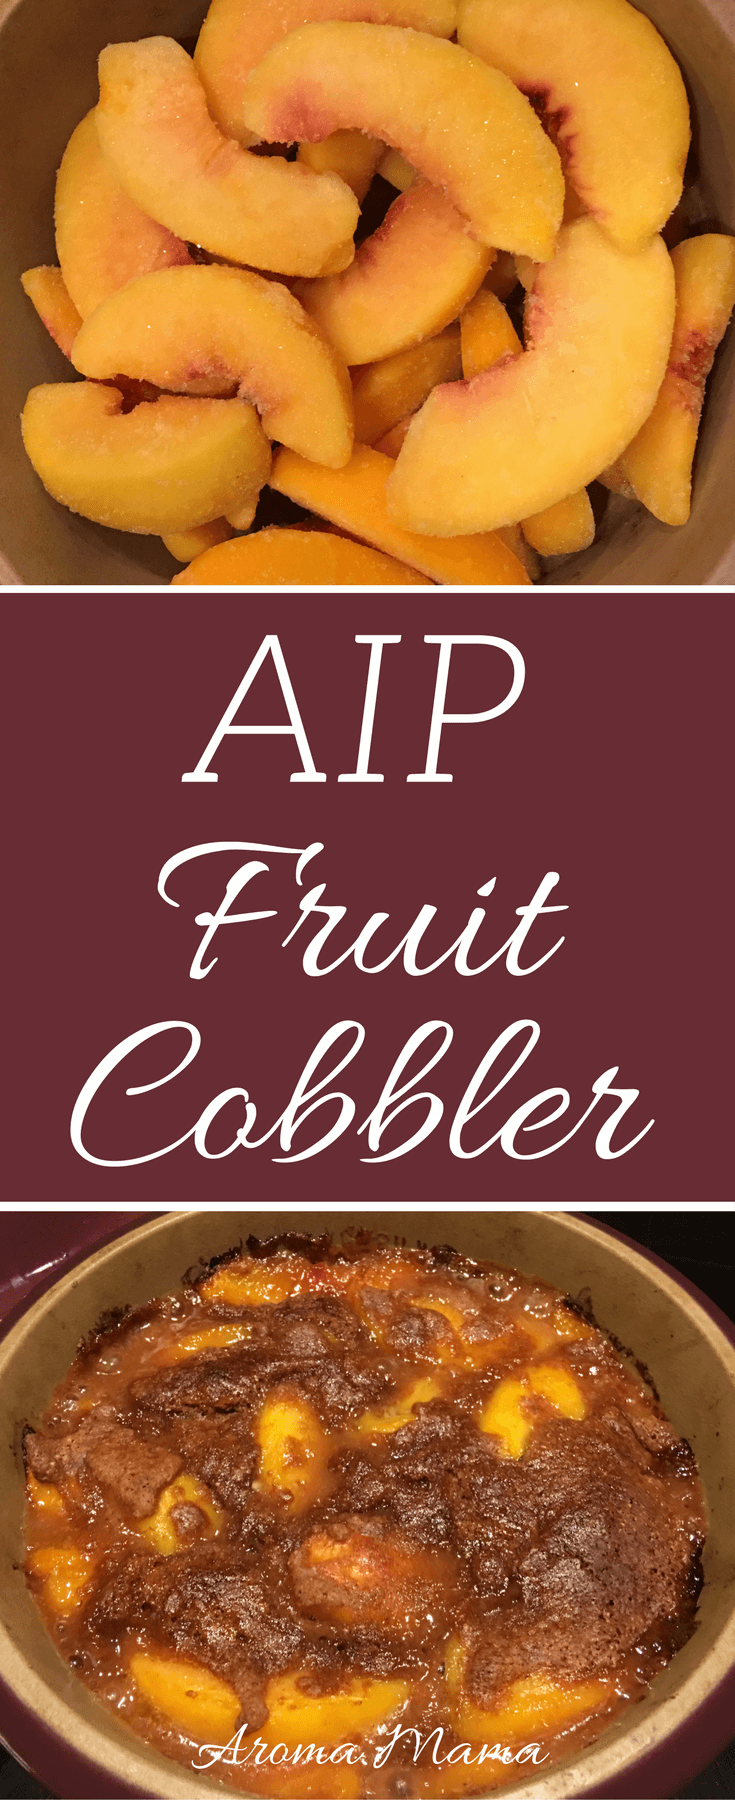 A fruit cobbler recipe that is AIP or Autoimmune Paleo compliant. Use your favorite fruit of choice. My favorites are peaches and blueberries! It's a dessert or healthy snack and kid-approved.